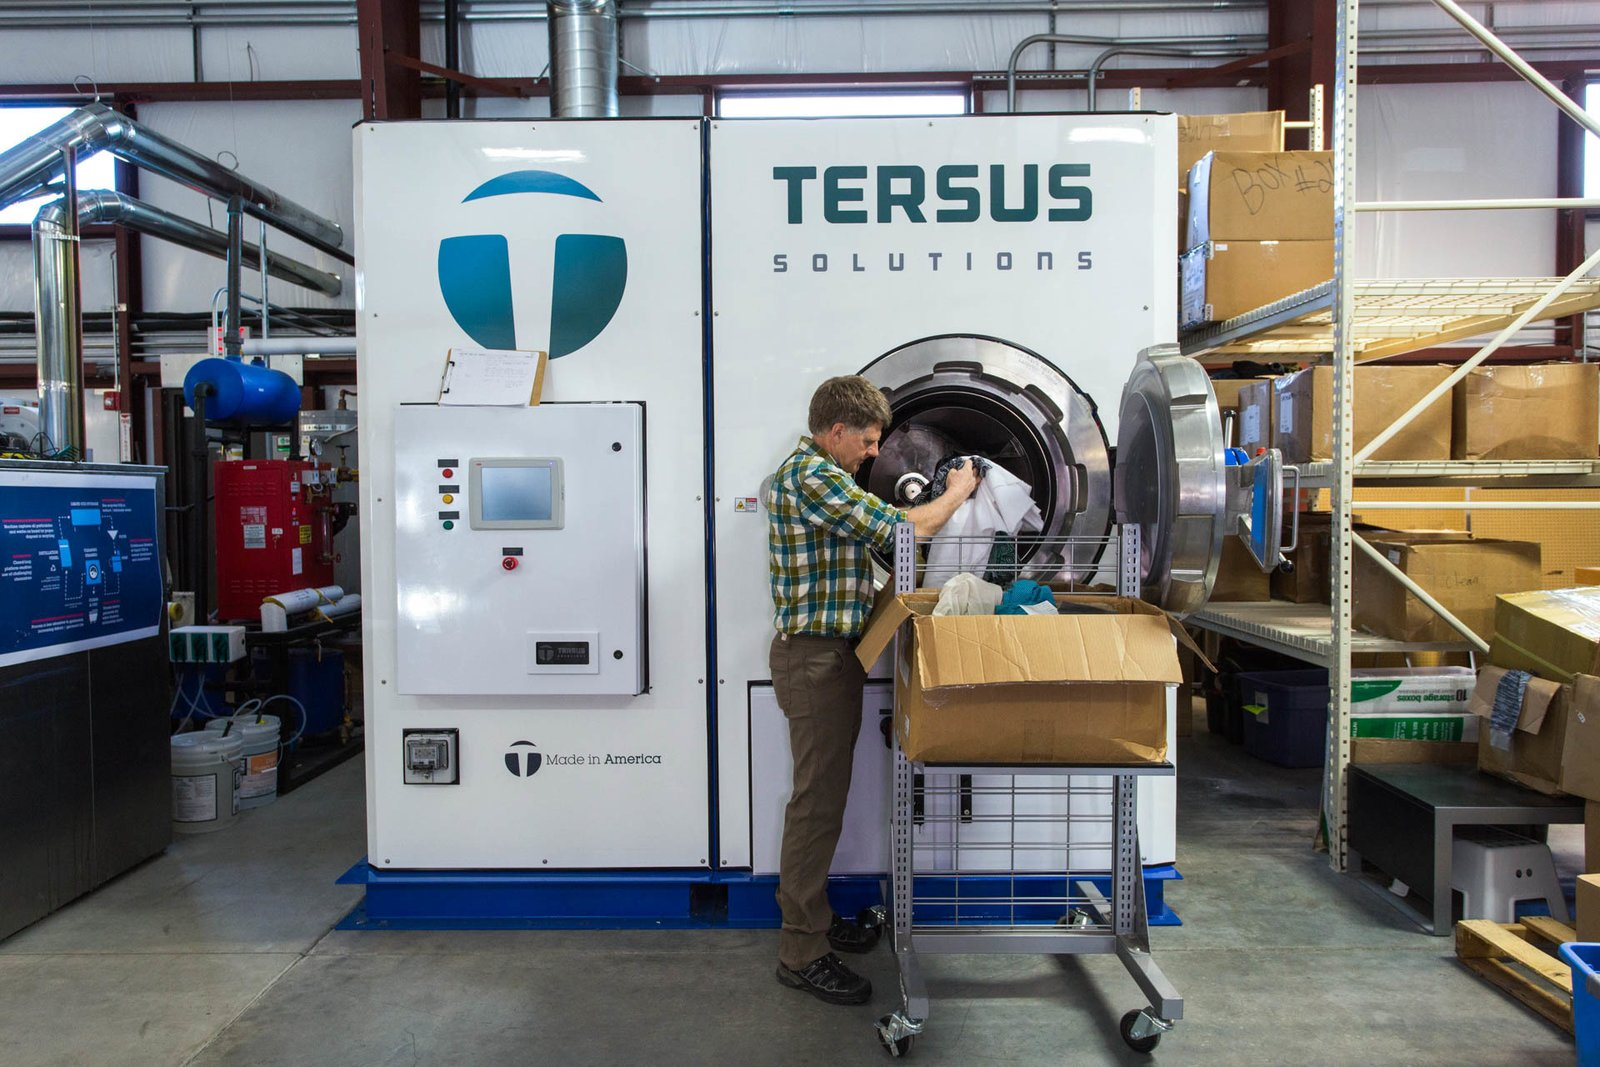 Tersus solutions laundry machine CO2 so not all water based cleaning A level of cleanliness  Photo 2 of 6 in A New Sustainable Subscription Program Is Helping Us Rethink the Way We Shop For Linens